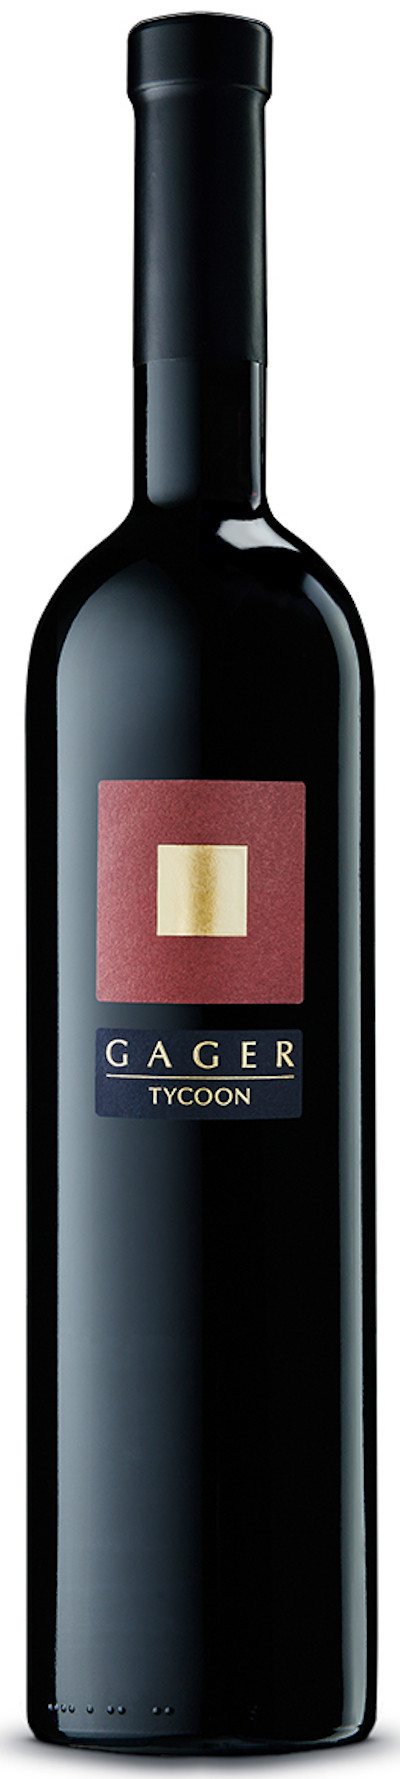 Gager - Cuvée Tycoon